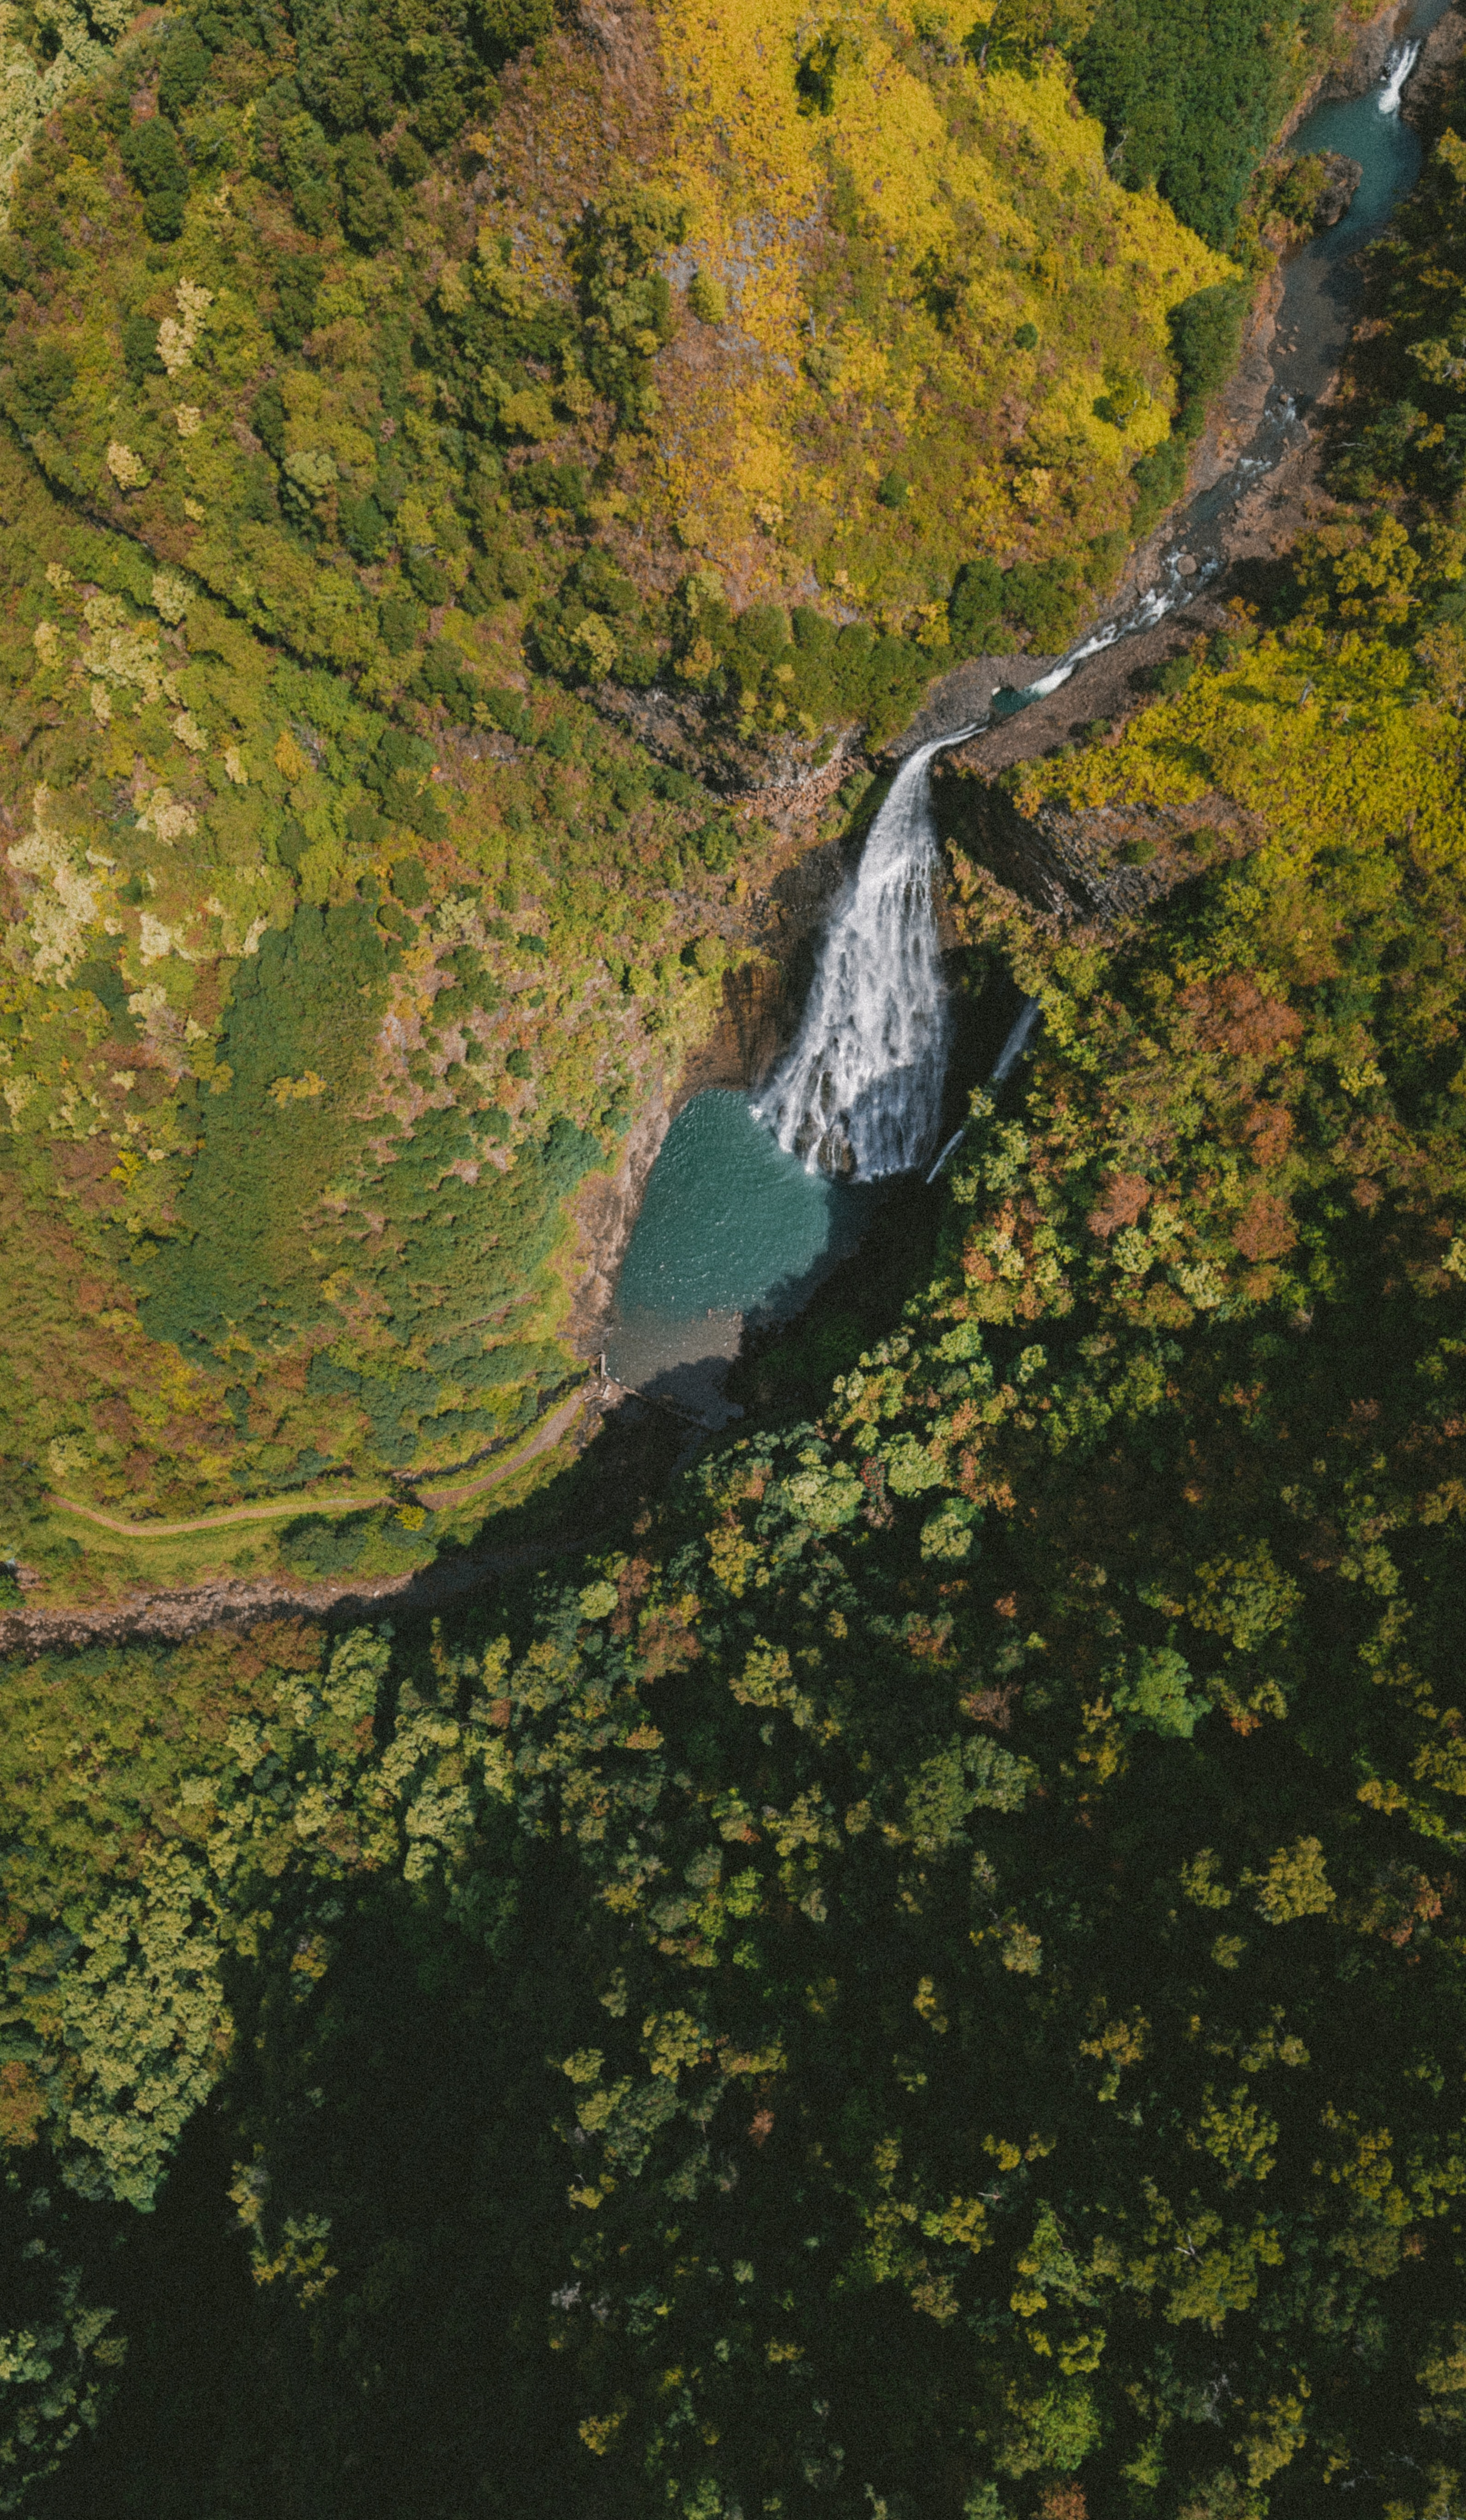 Drone view of a waterfall and river in between mountains and forest